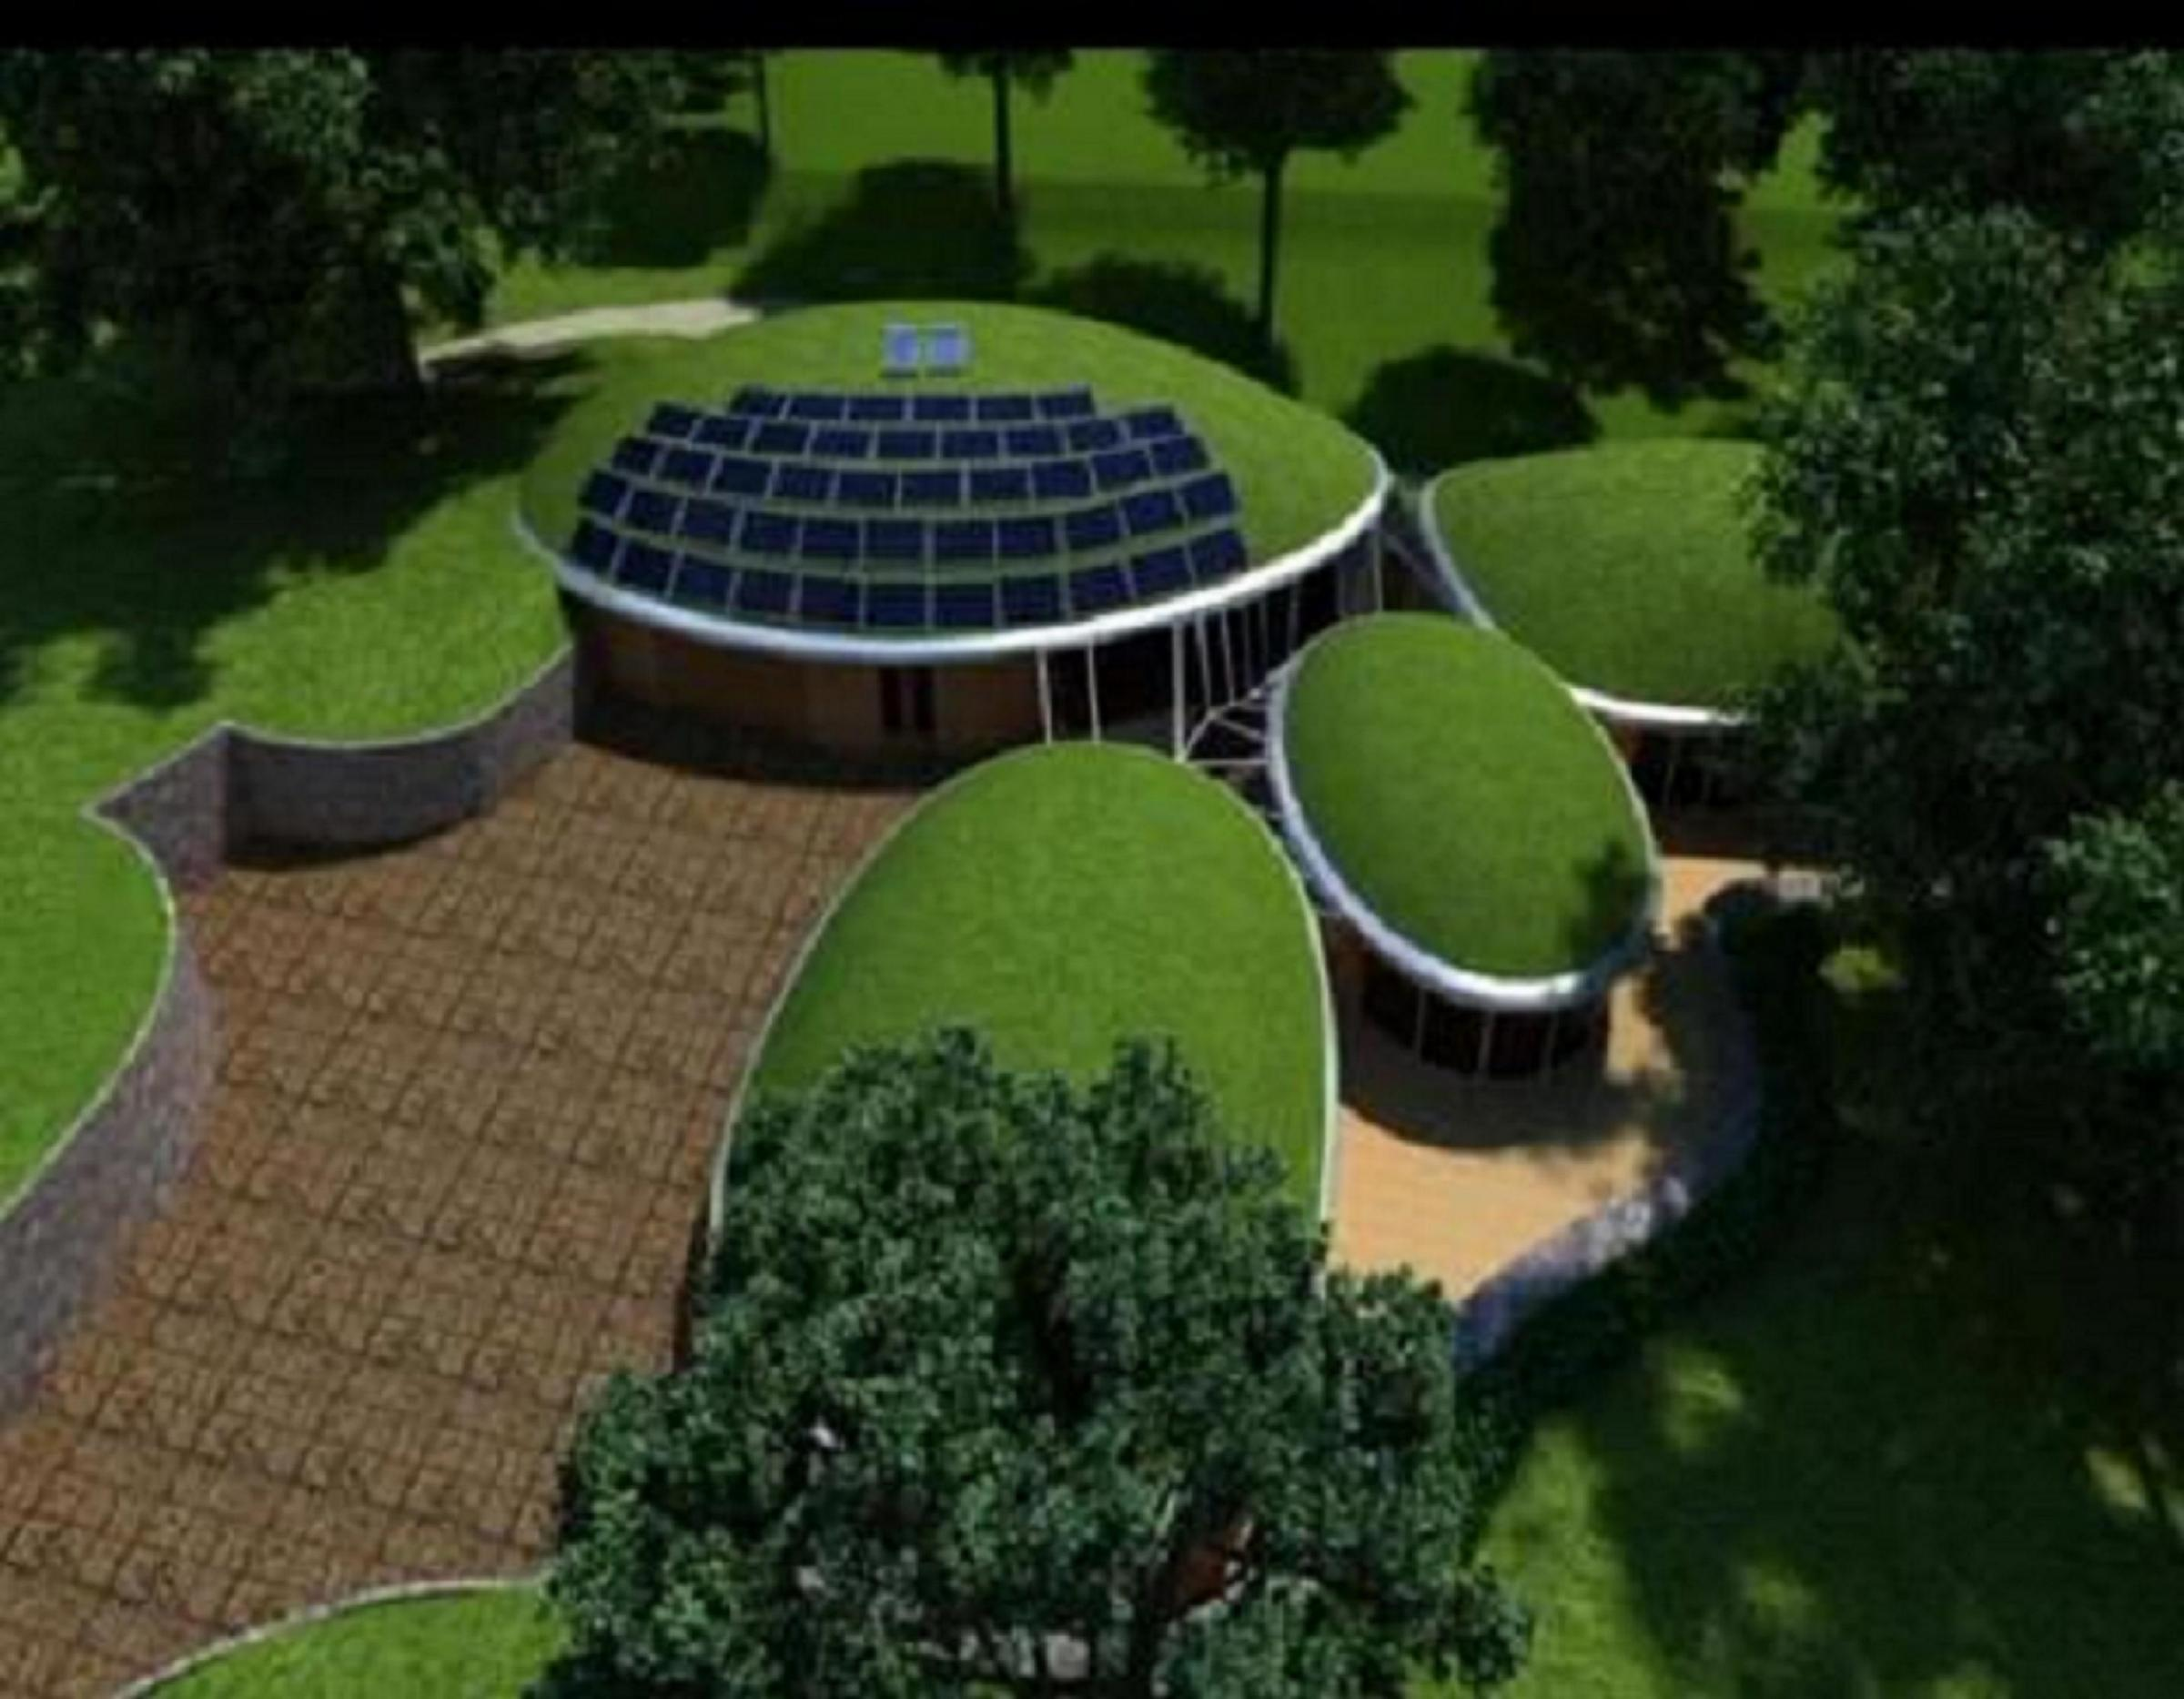 'Hobbit house' plans rejected